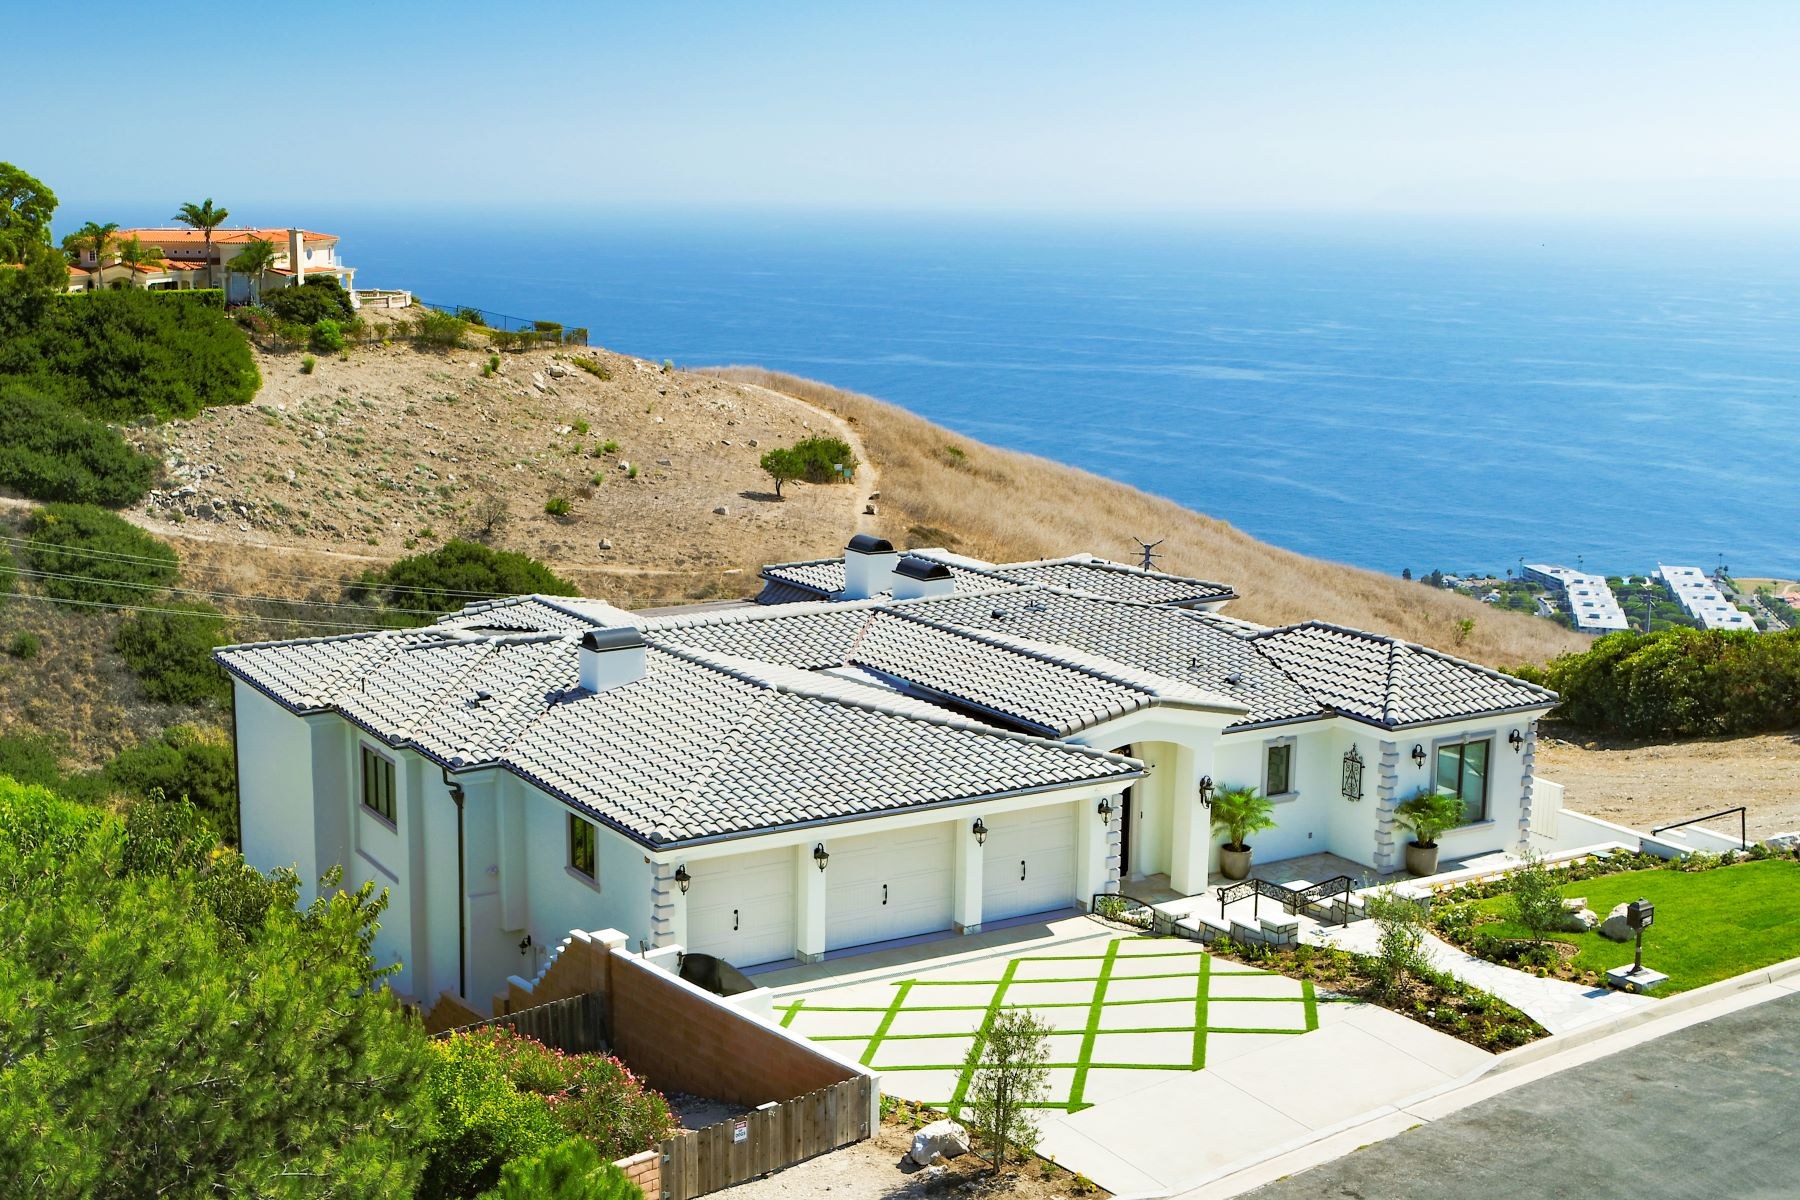 Single Family Homes for Active at 6332 Chartres Drive, Rancho Palos Verdes, CA 90275 6332 Chartres Drive Rancho Palos Verdes, California 90275 United States